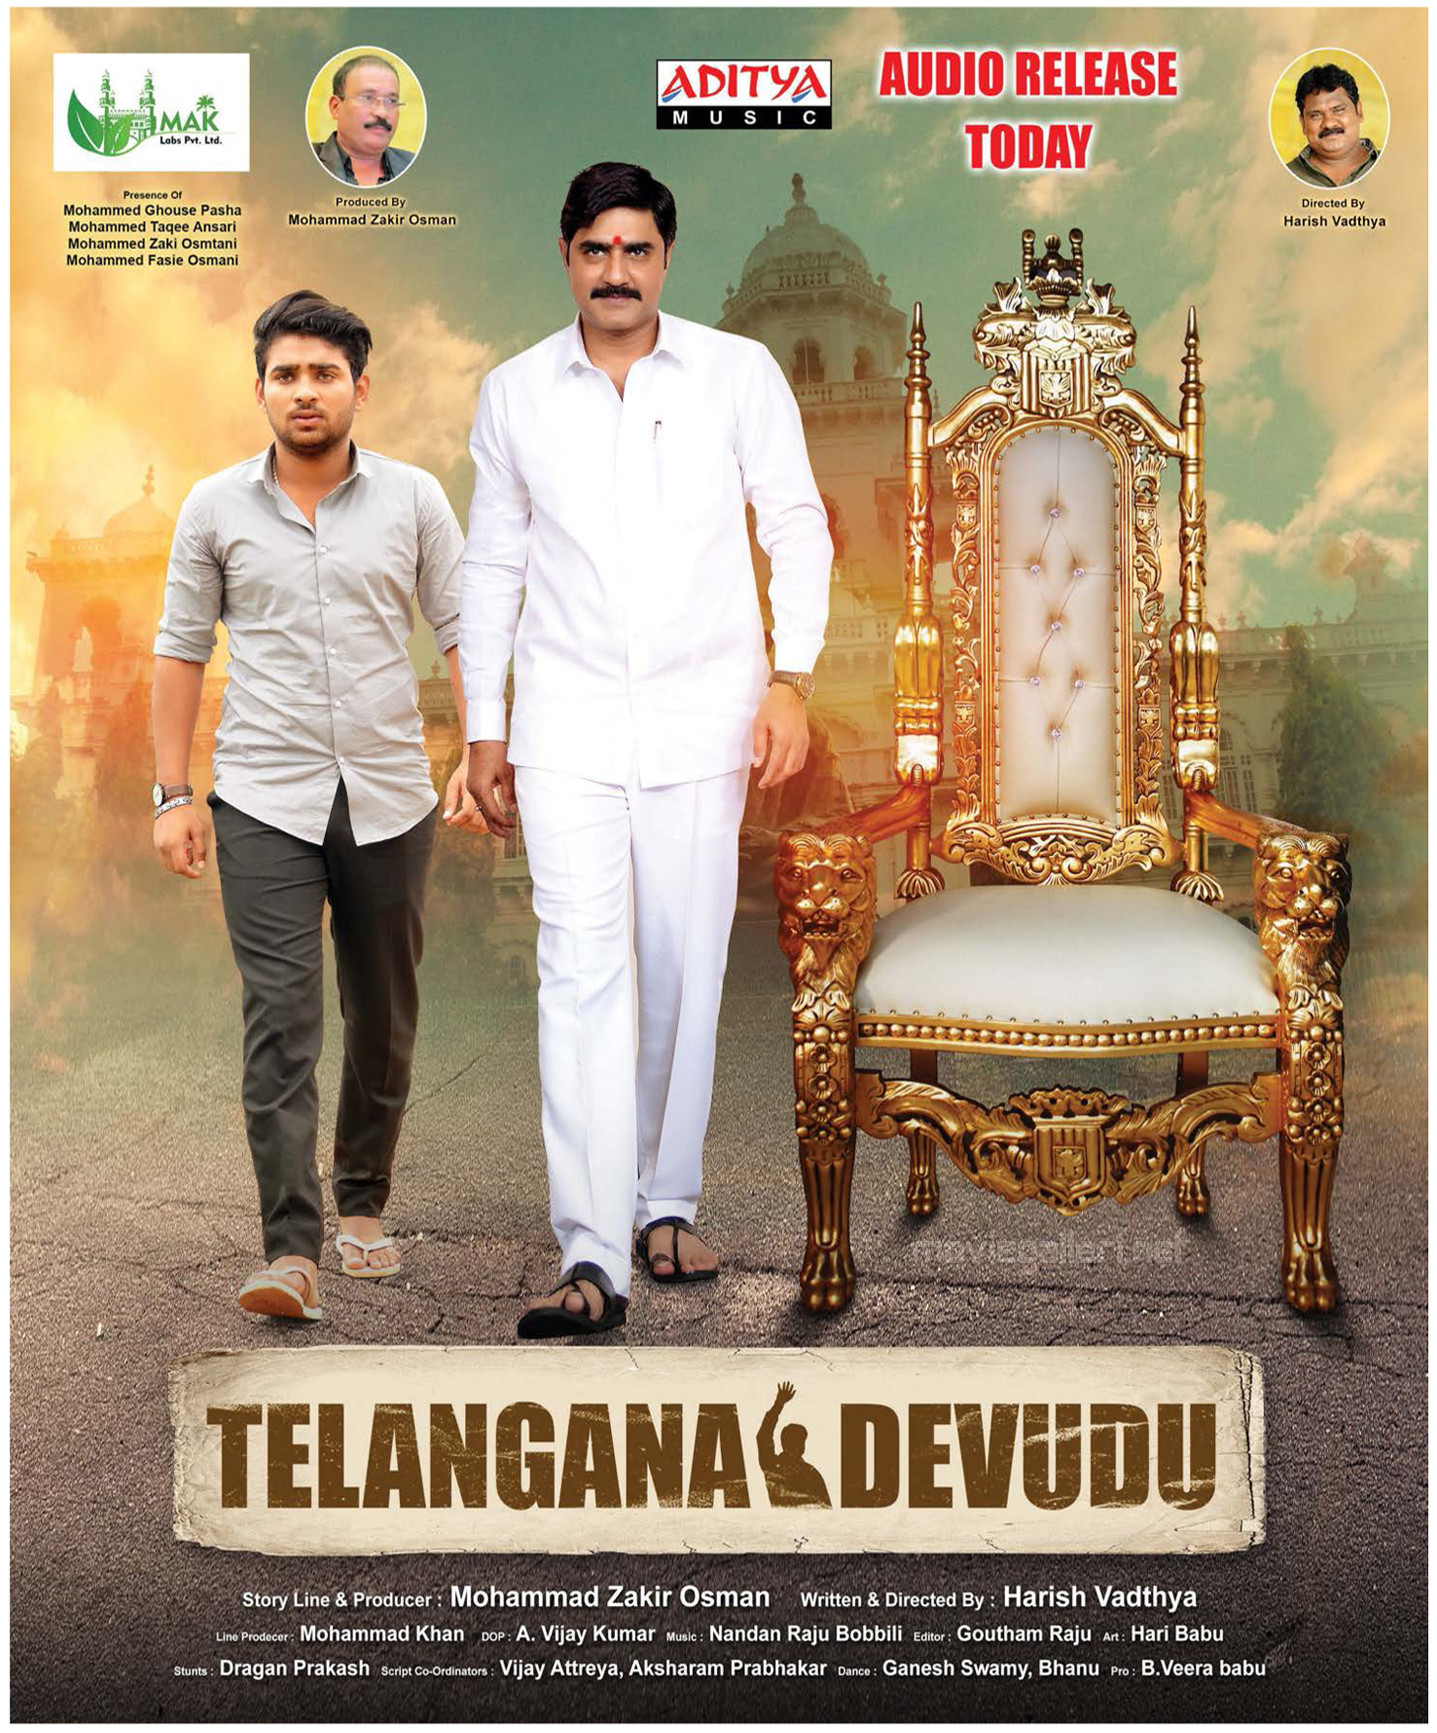 Srikanth Telangana Devudu Movie Audio Release Today Posters